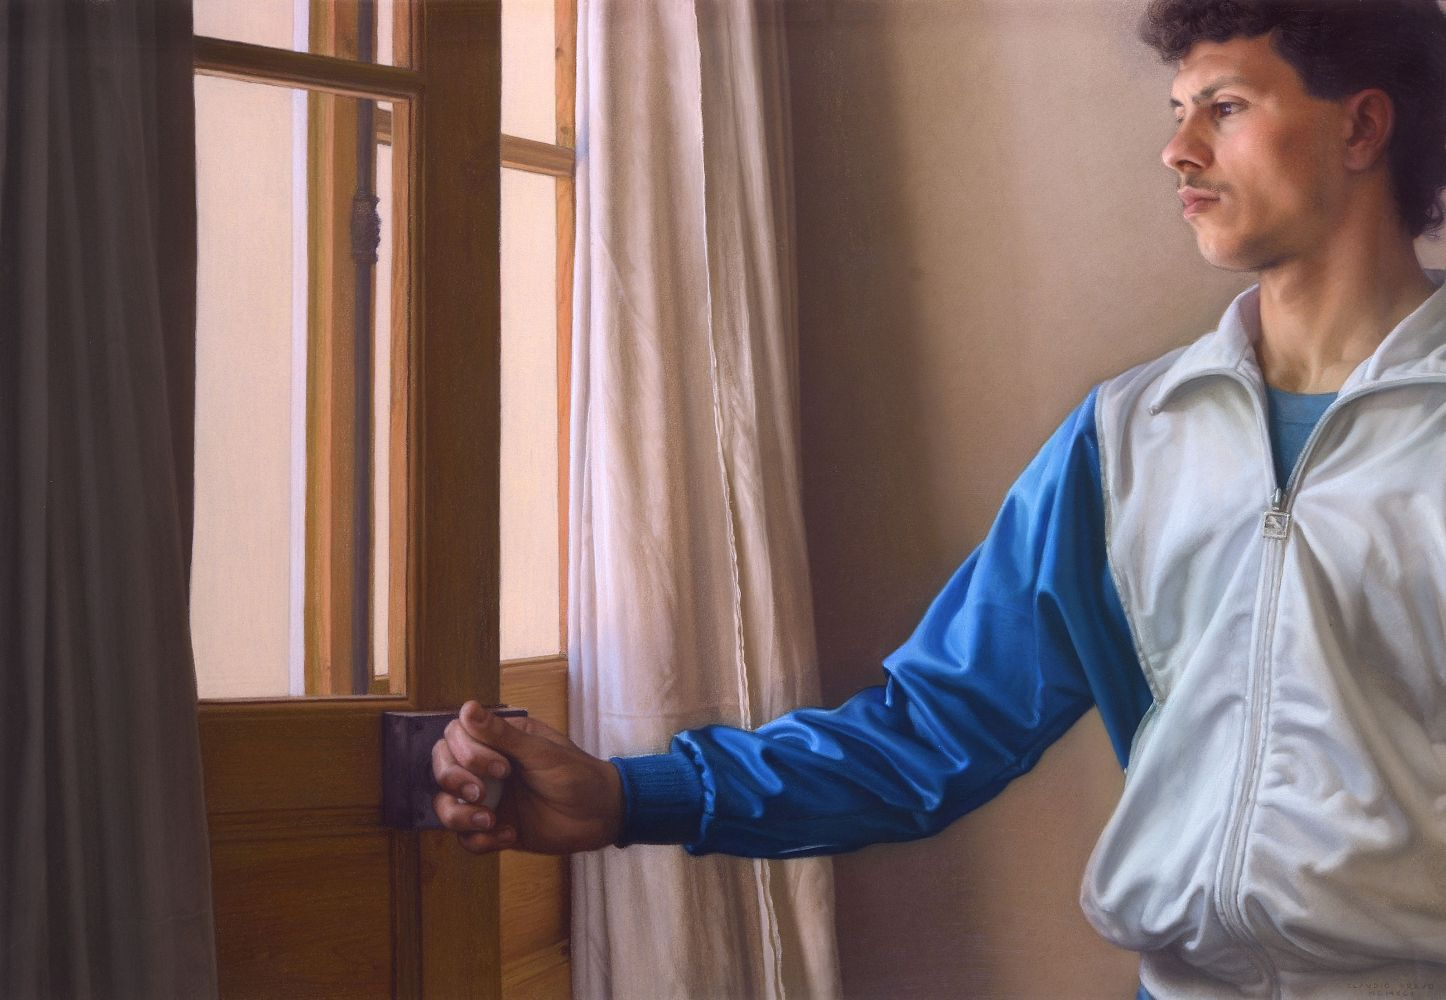 Claudio Bravo, Opening the Door, 1991, pastel on paper, 29 1/8 x 40 1/8 inches